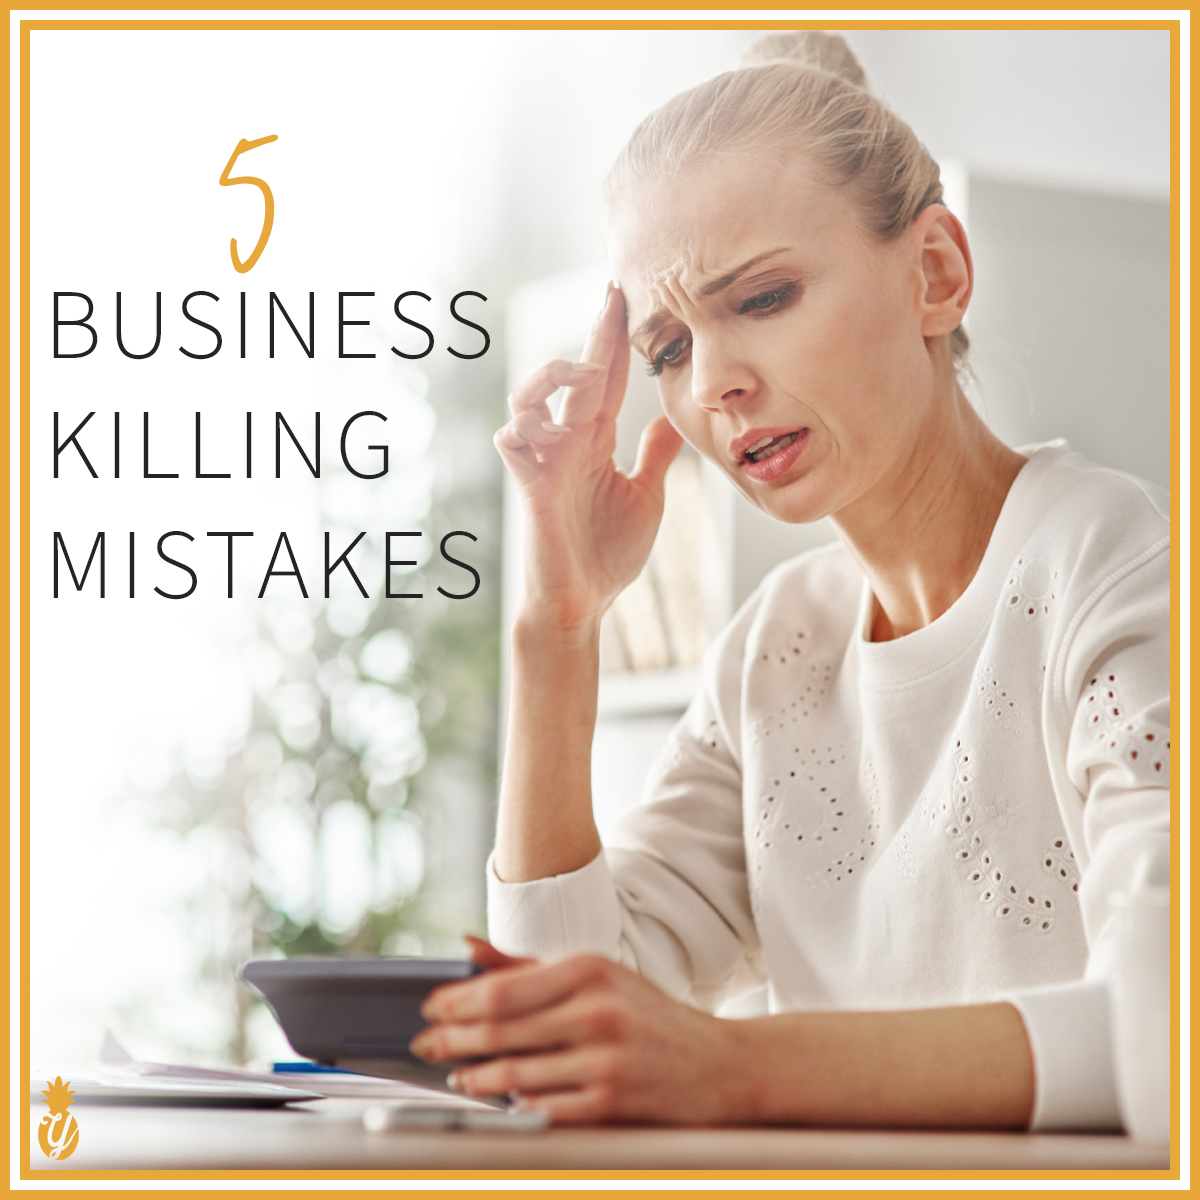 5 Business Killing Mistakes